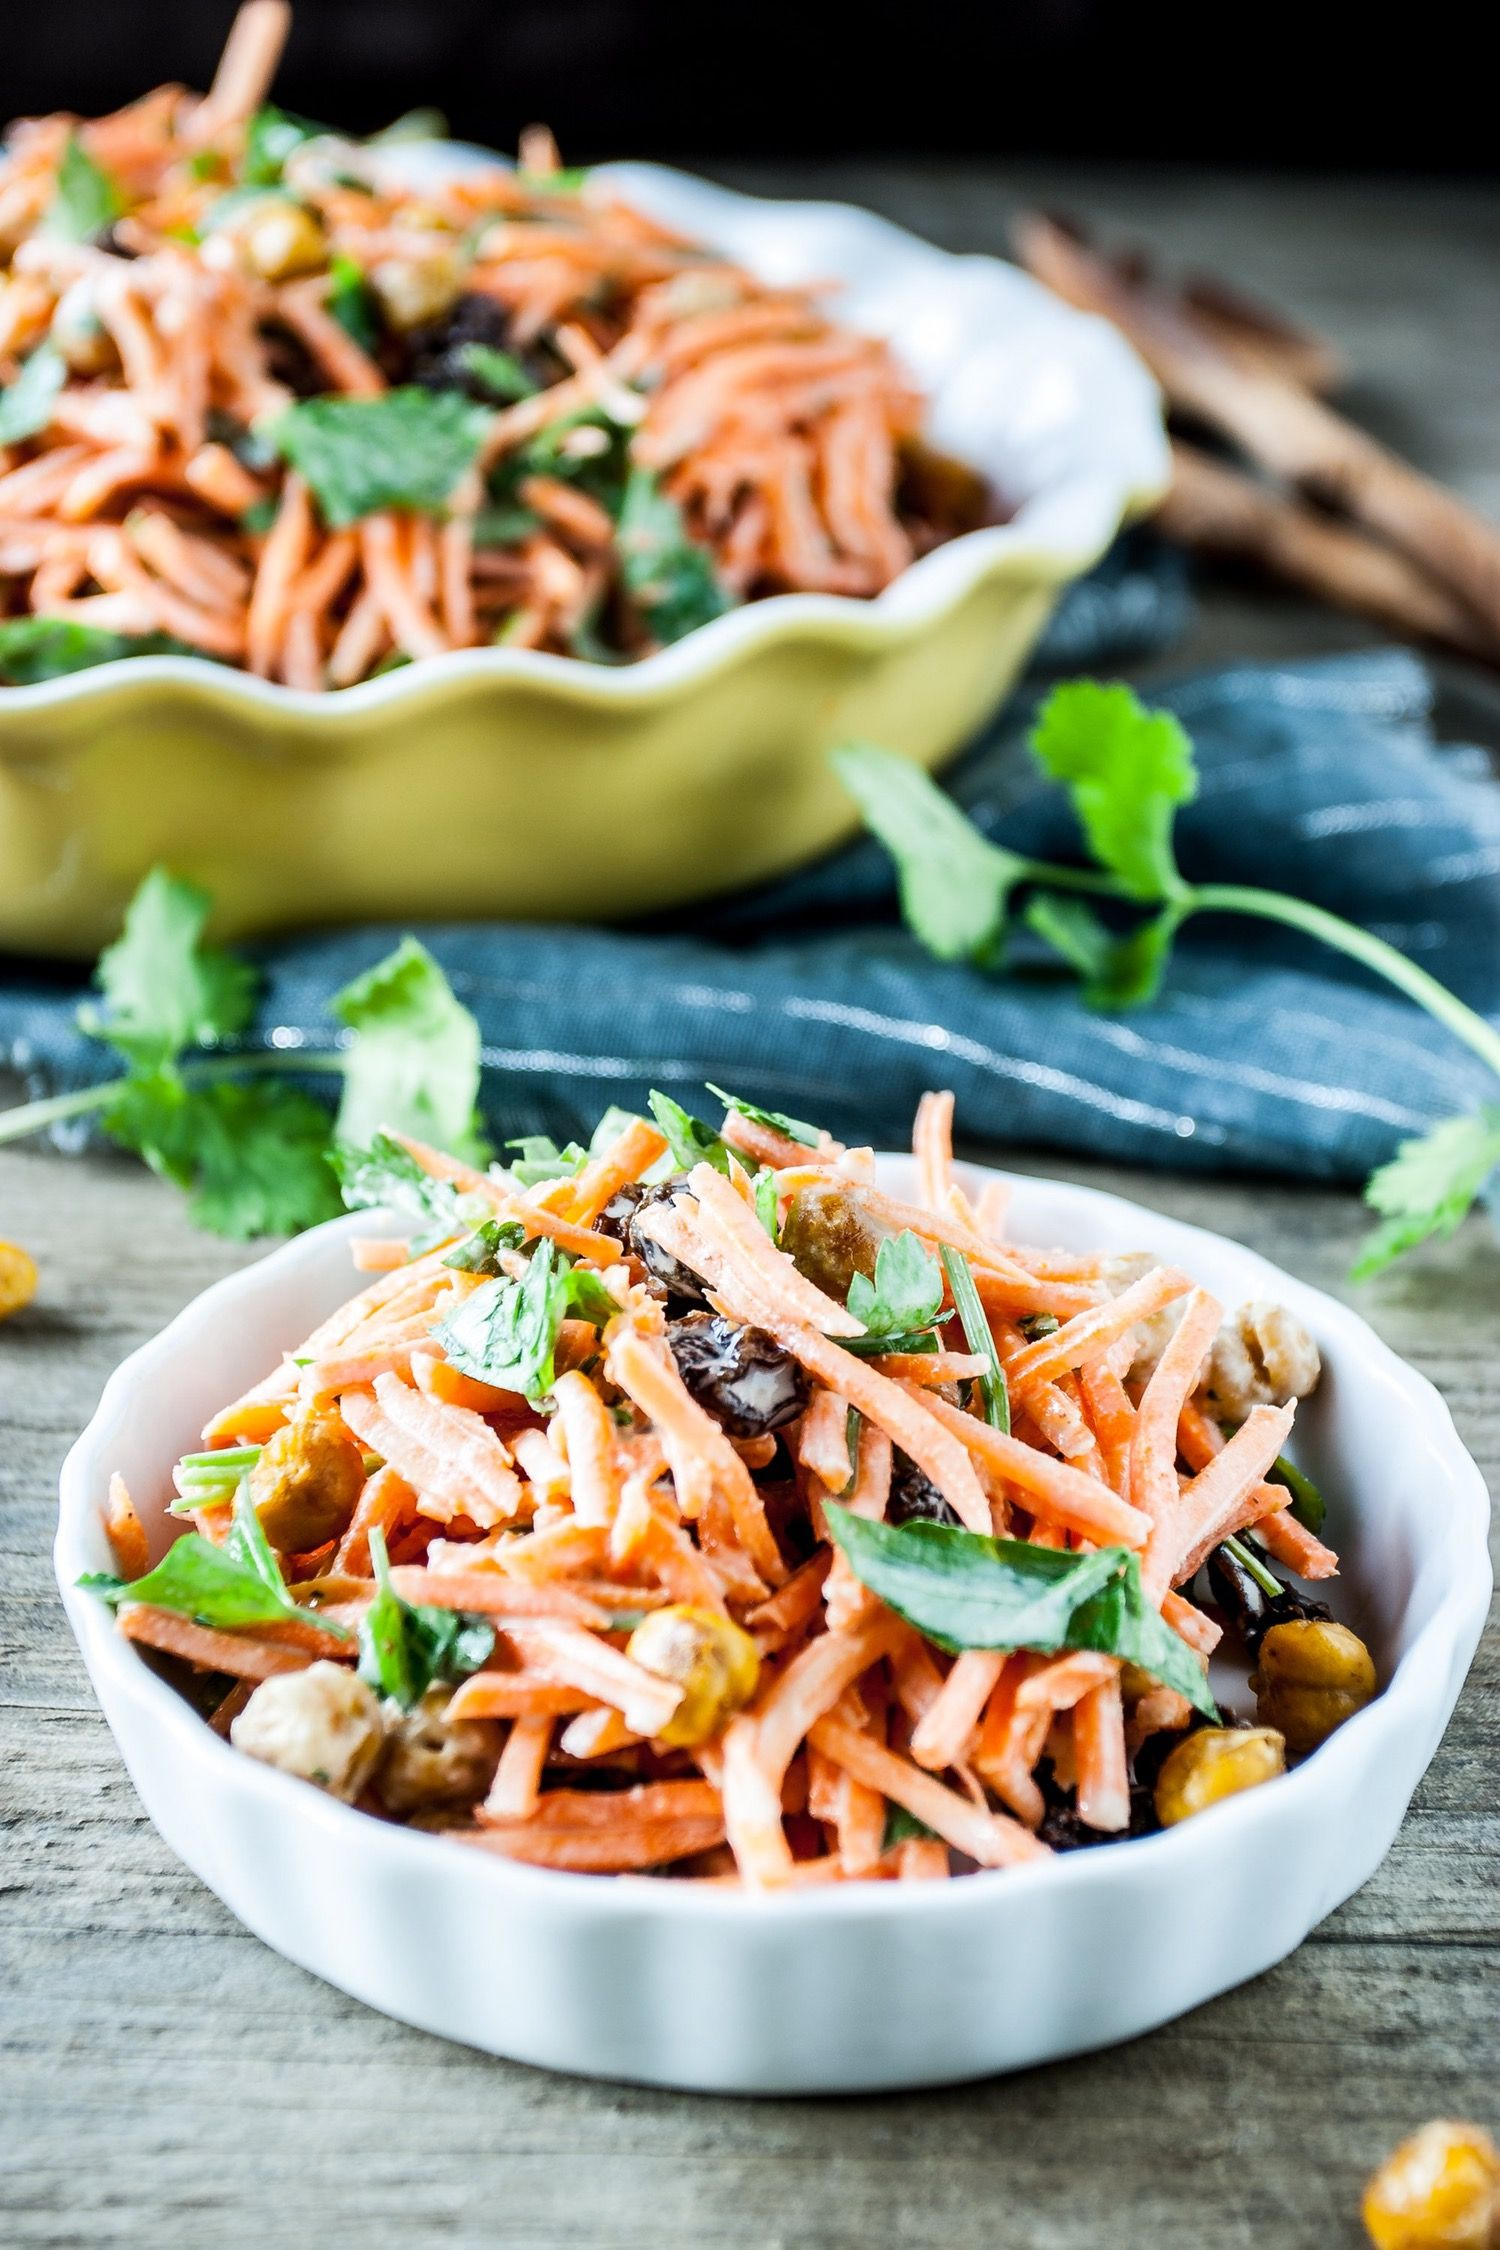 Recipe: Carrot Tahini Salad — Side Dish Recipes from The Kitchn